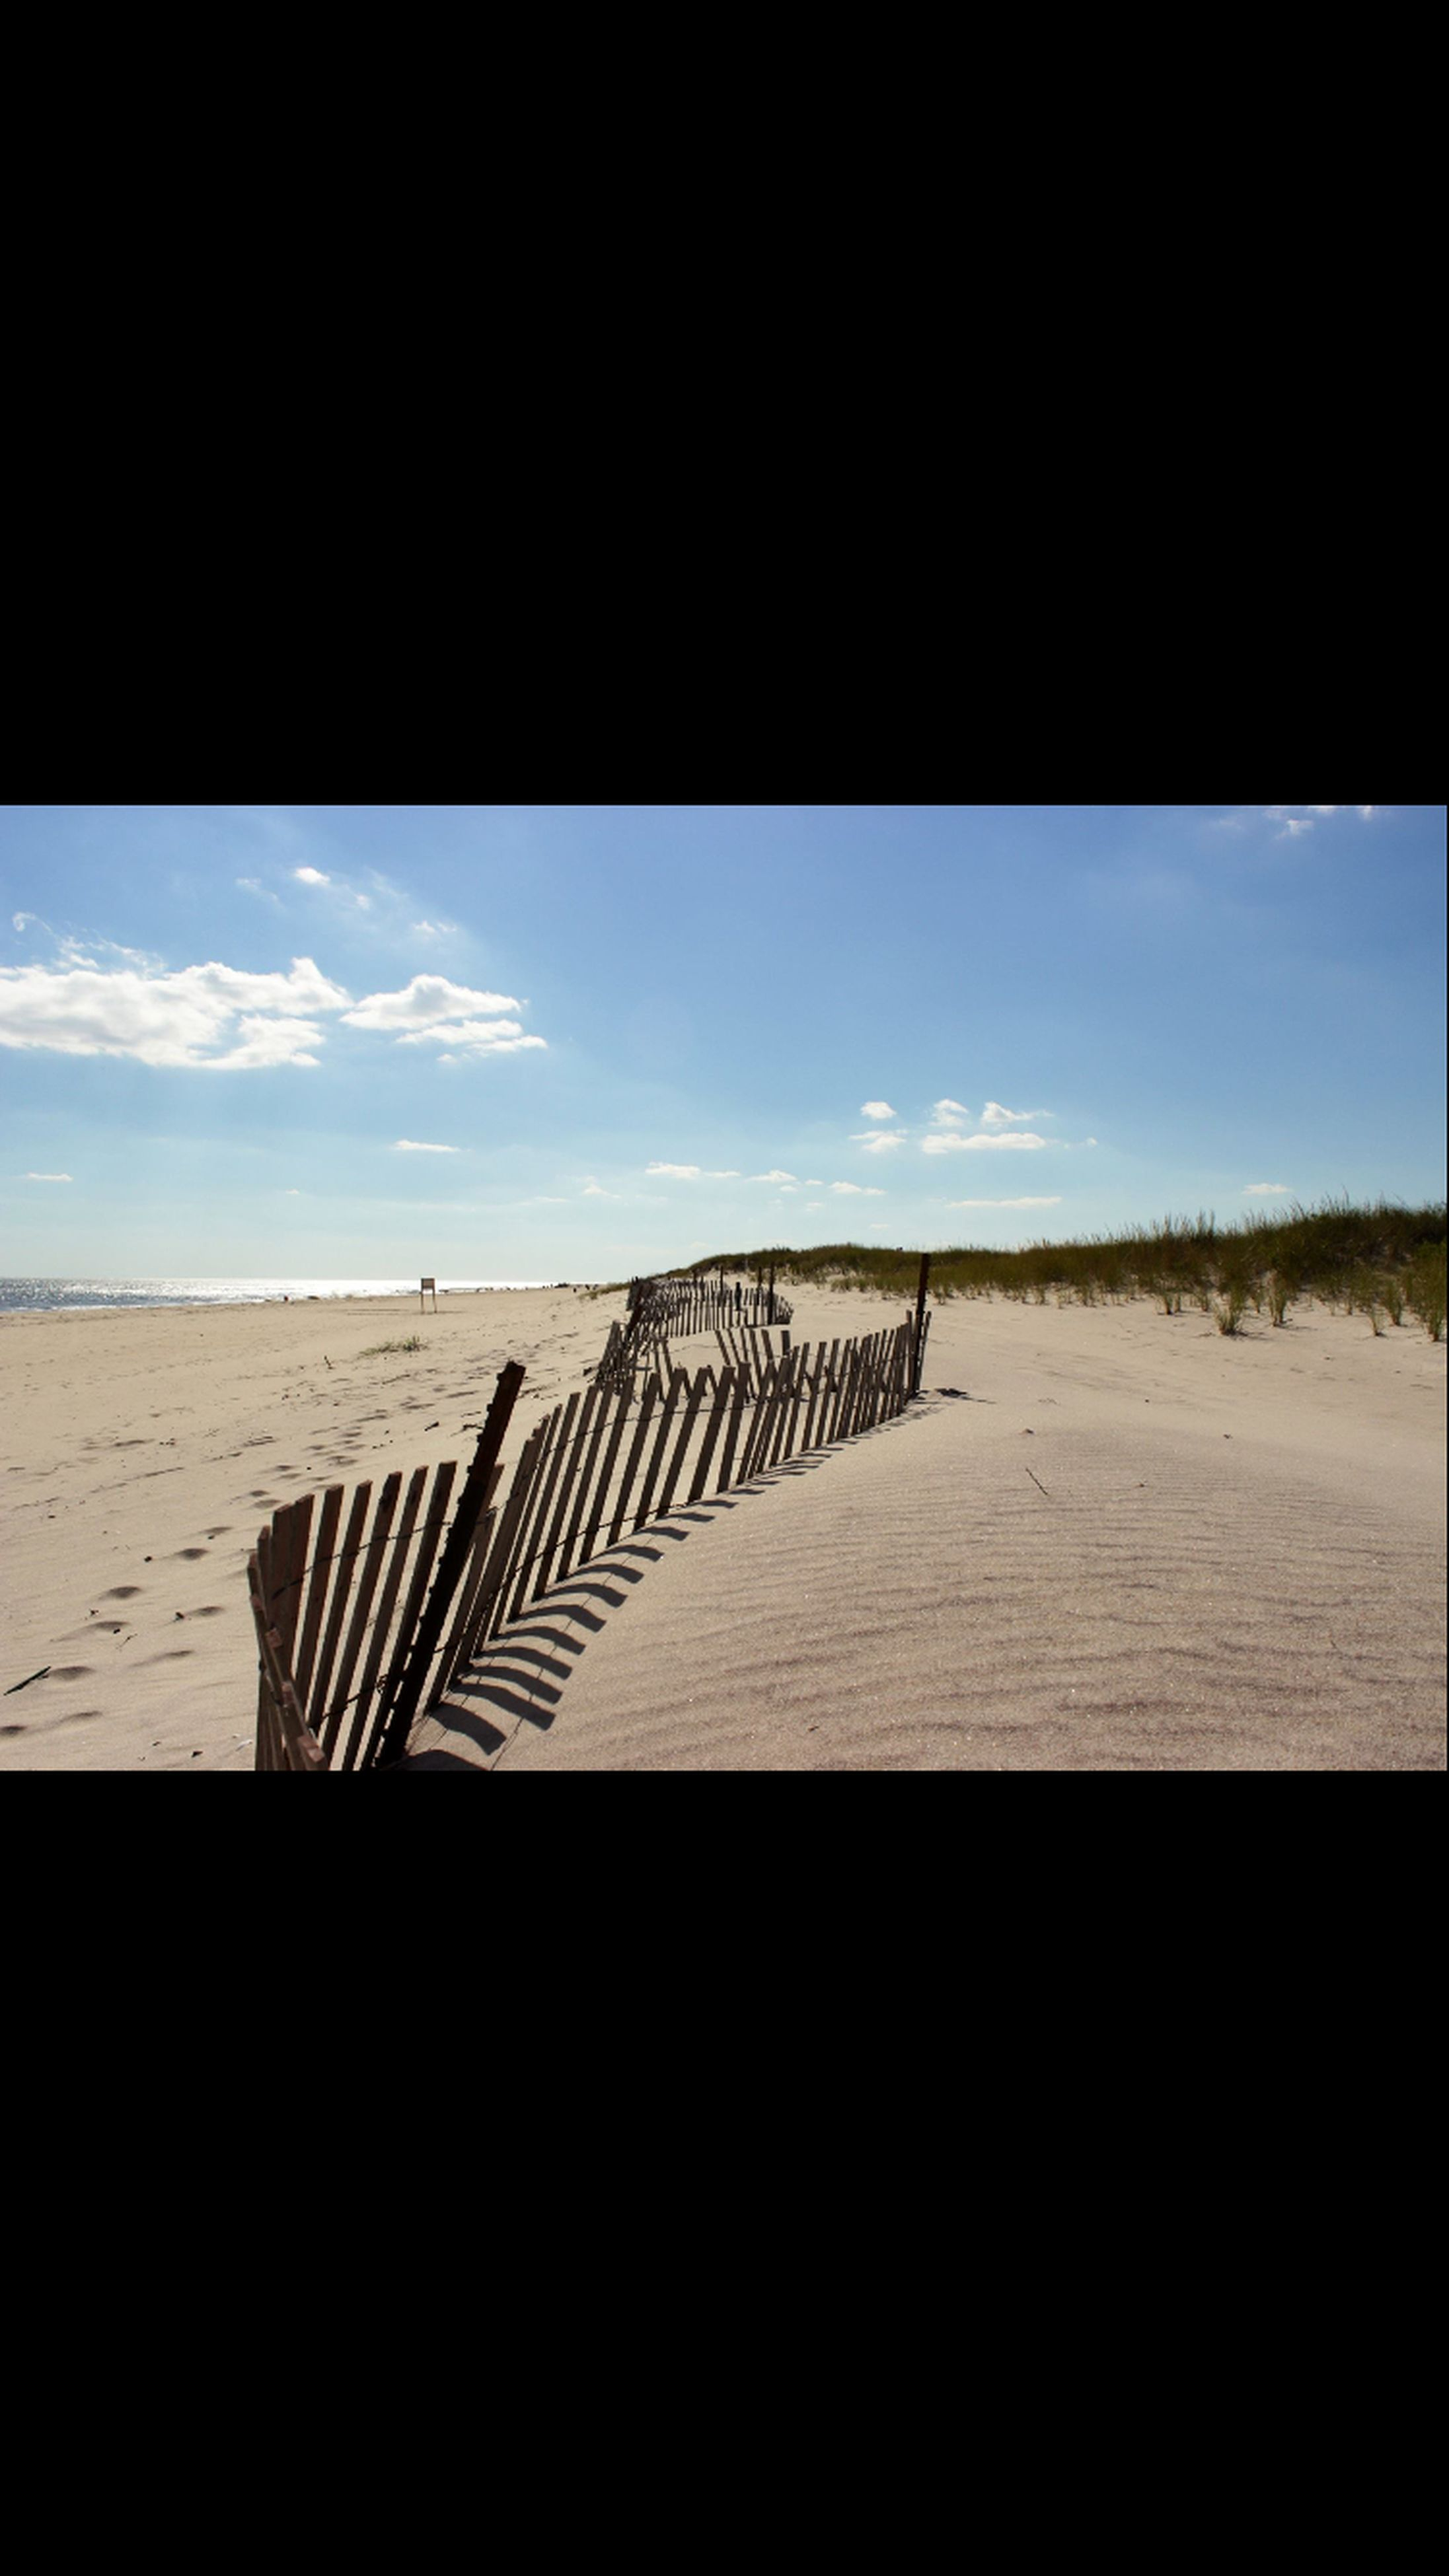 sky, sand, shadow, sunlight, beach, wood - material, day, tranquility, no people, nature, outdoors, absence, tranquil scene, cloud, pattern, cloud - sky, wood, wooden, copy space, low angle view